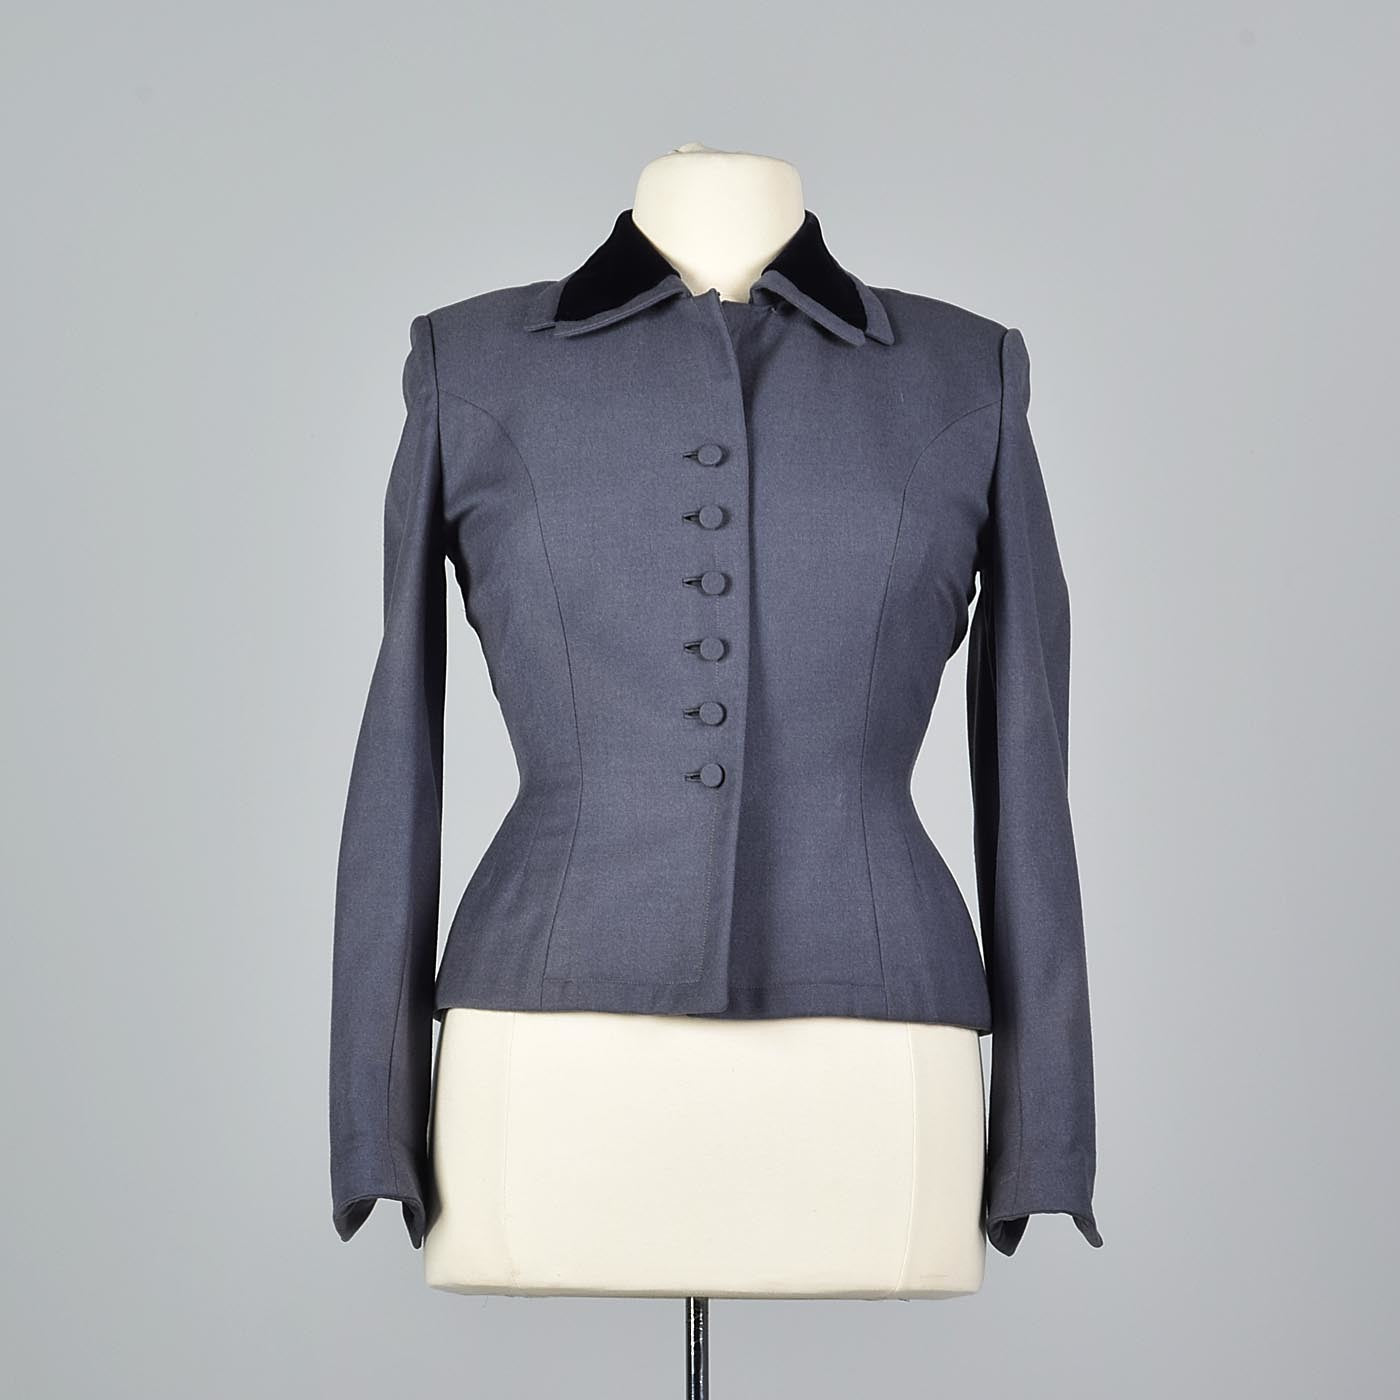 1950s Hourglass Gray Wool Jacket with Velvet Collar